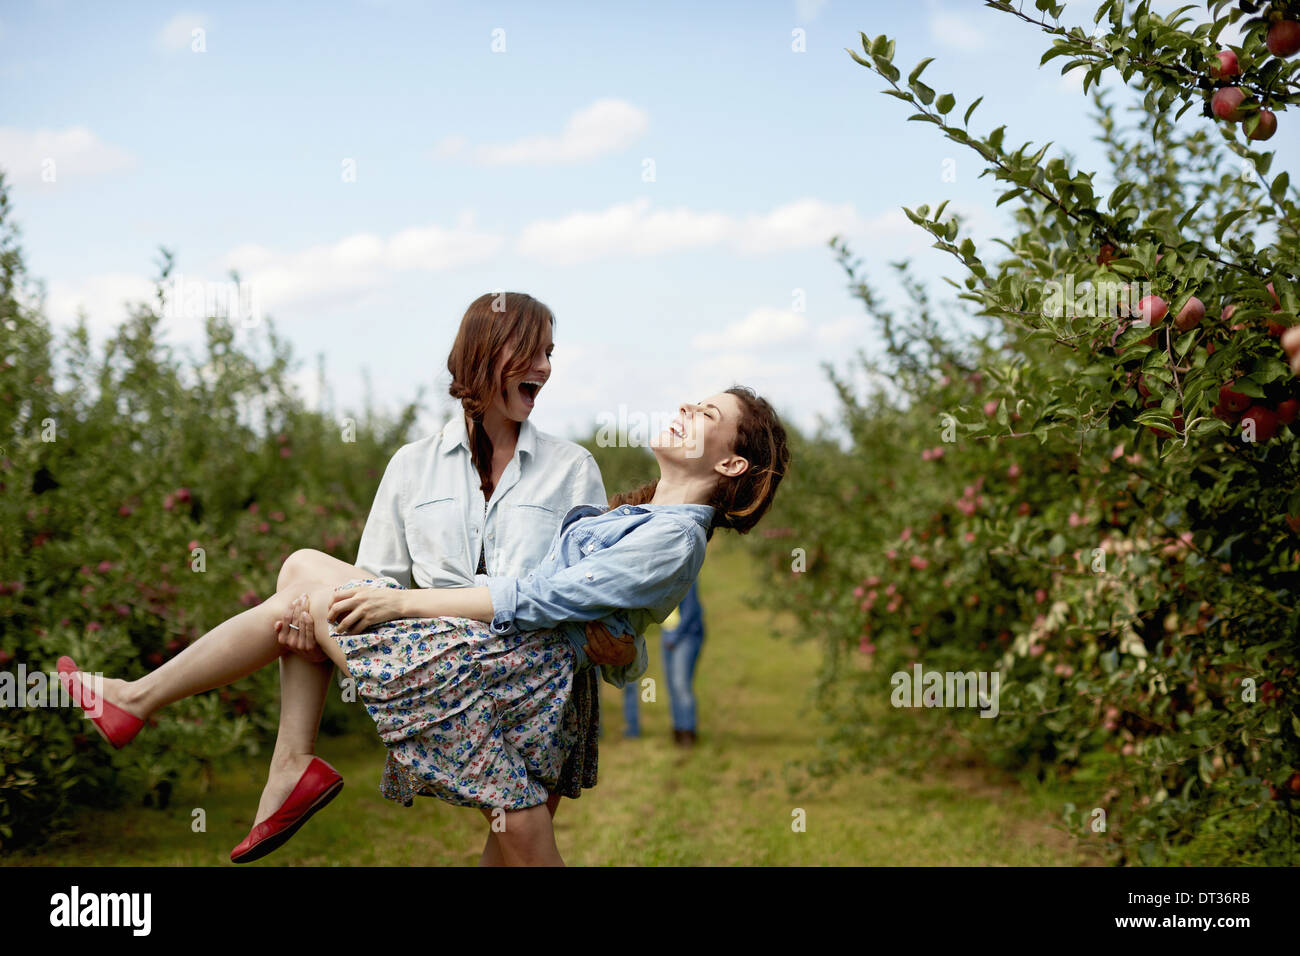 Rows of fruit trees in an organic orchard Two young women laughing one carrying the other - Stock Image